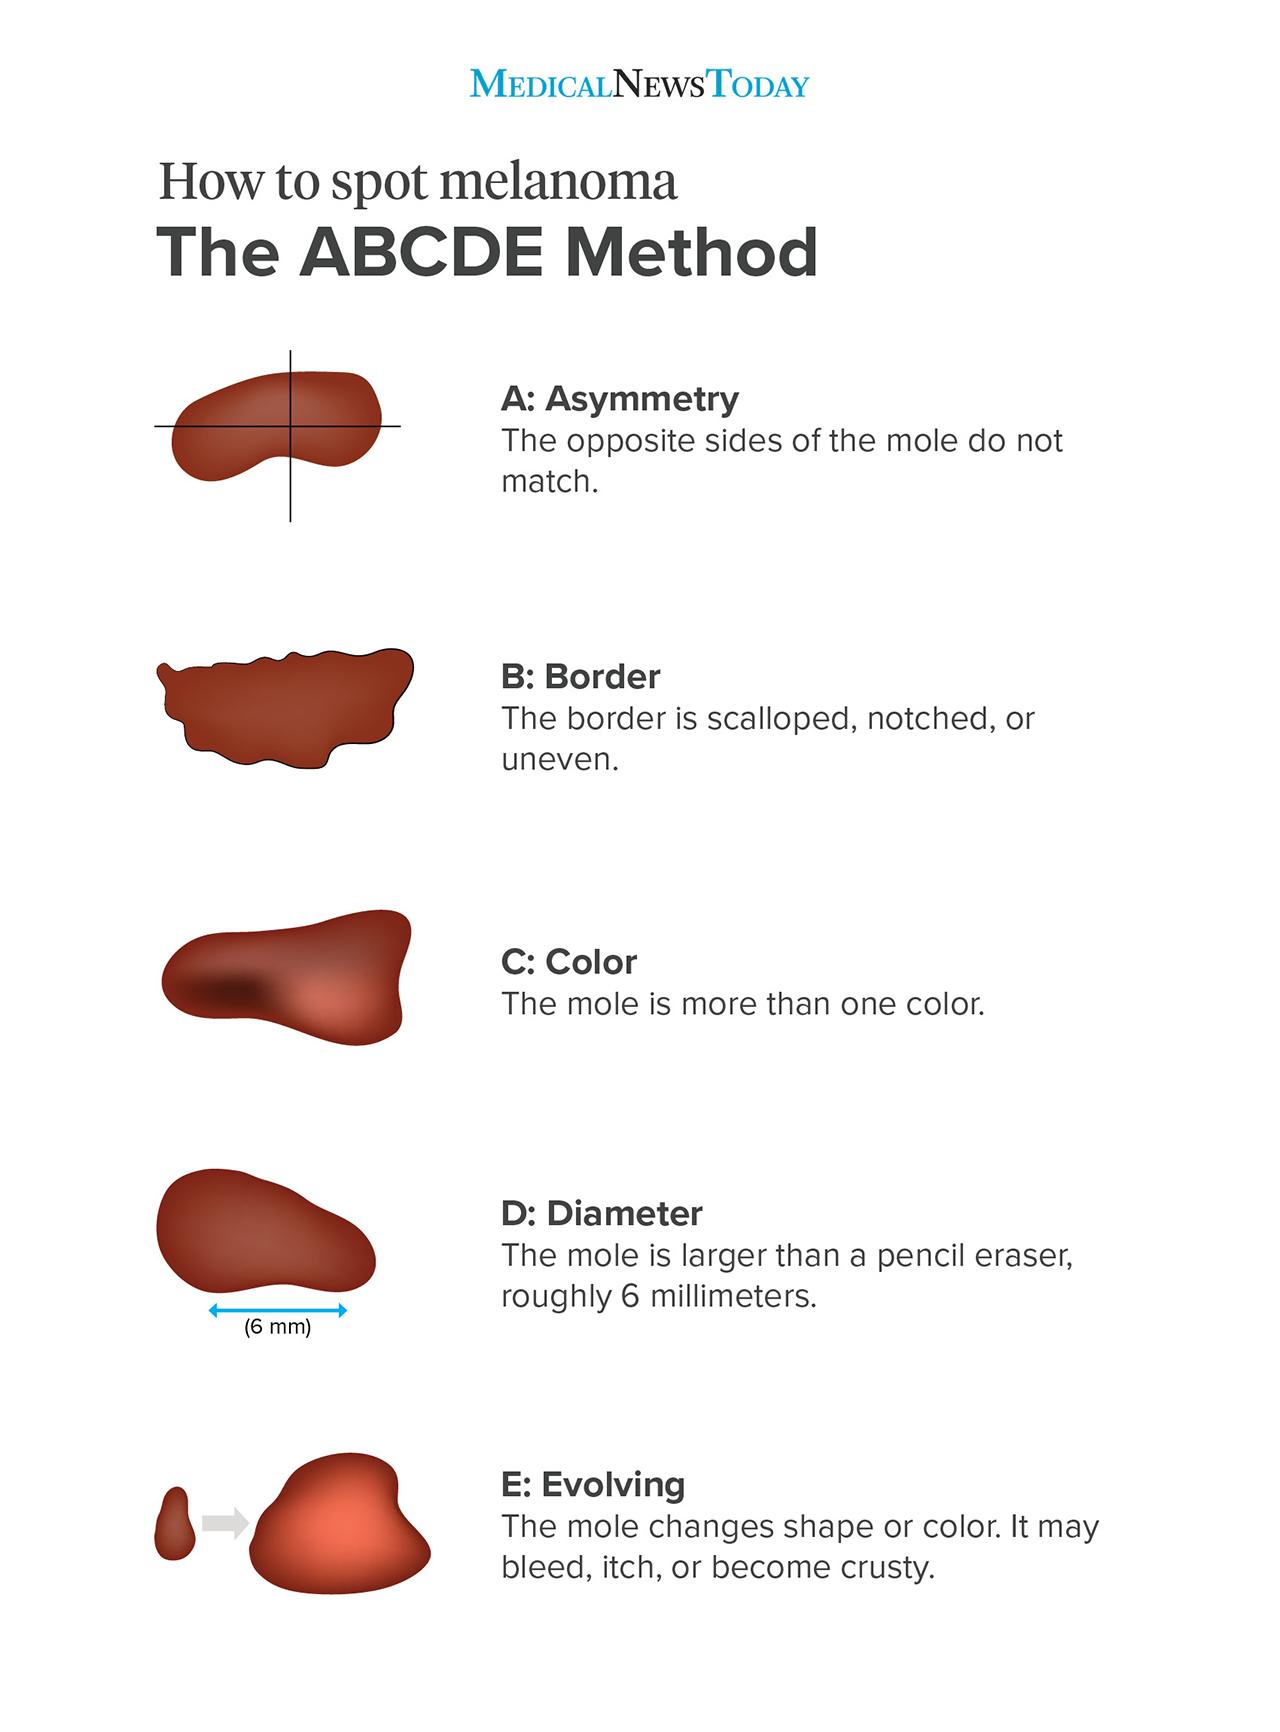 How to spot melanoma infographic - the ABCDE method